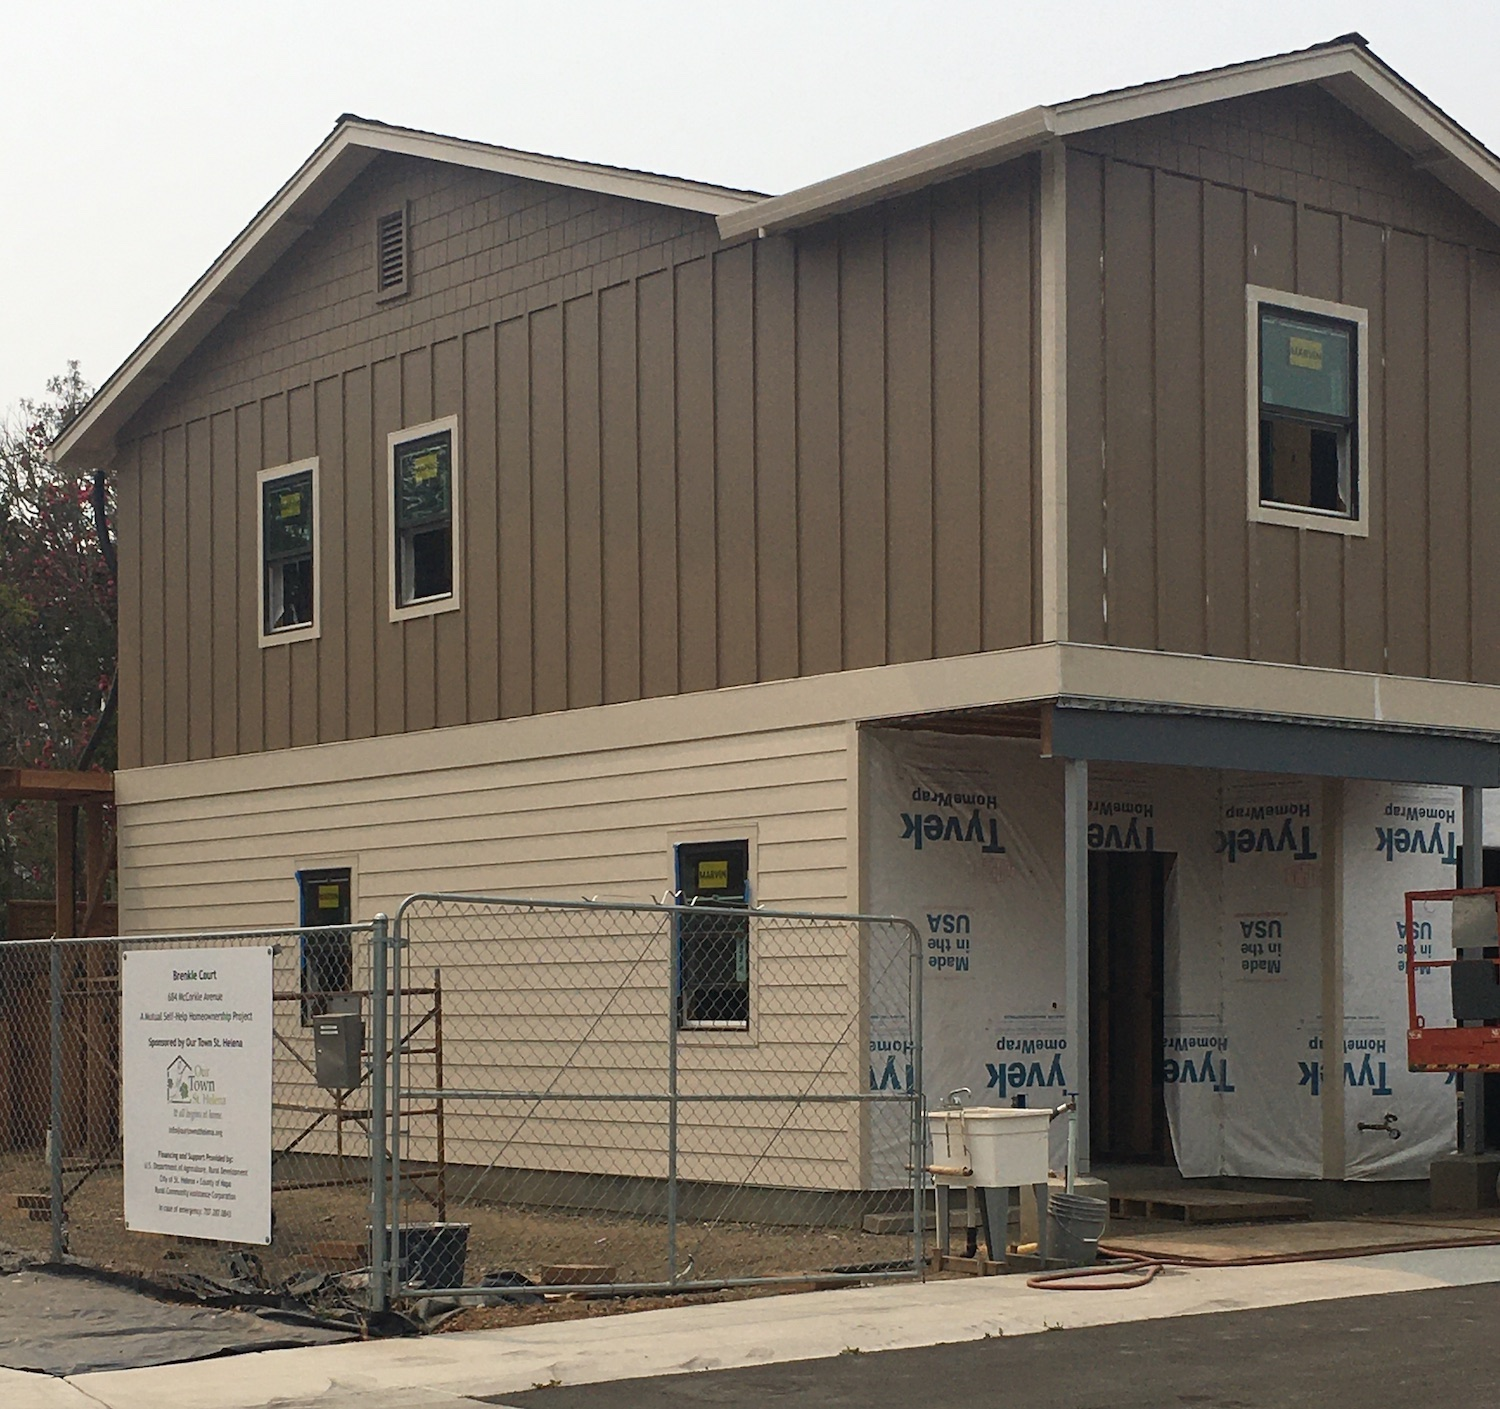 our town st helena progress on Brenkle Court